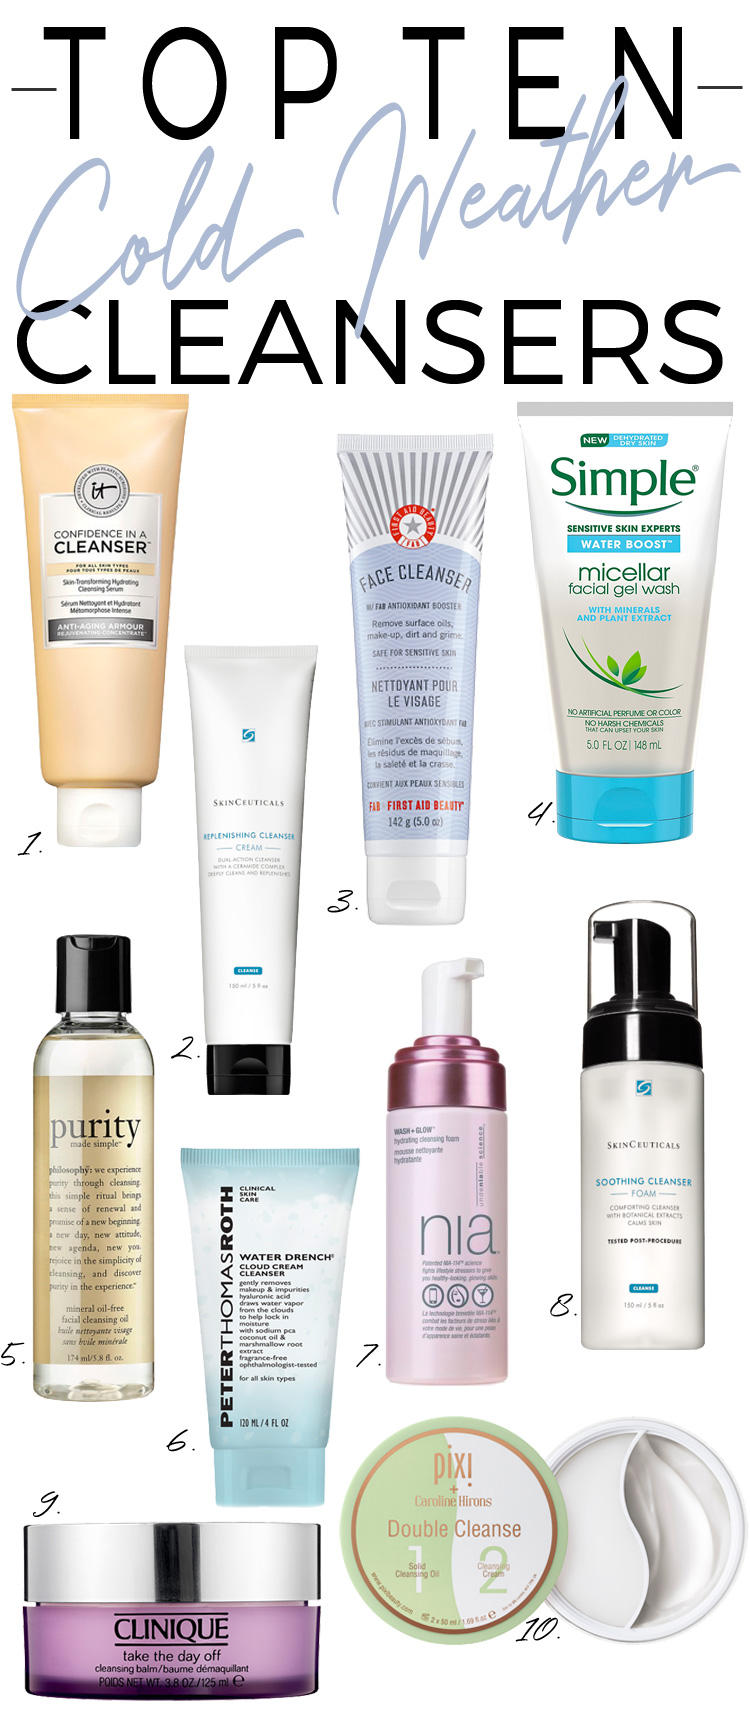 Top 10 Cold Weather Cleansers